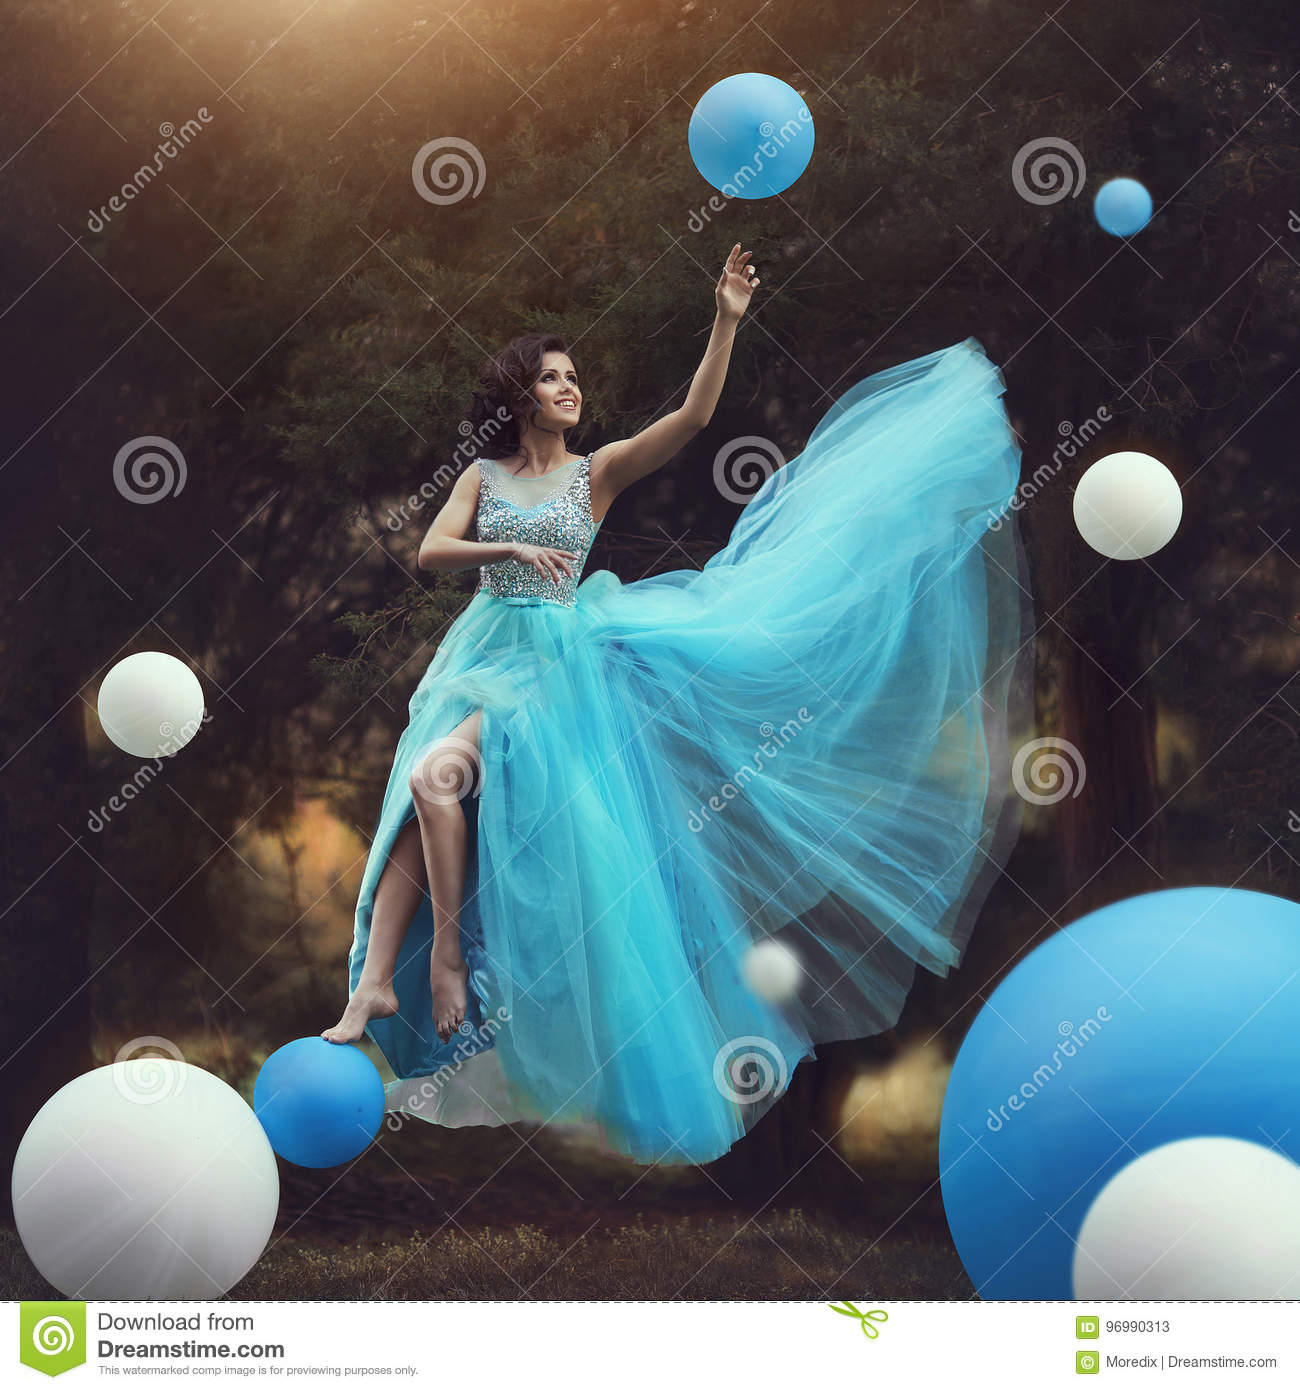 The Woman levitates. A beautiful girl in a blue fluffy gown Leets along with balloons. Dynamic art photography. Fantasy